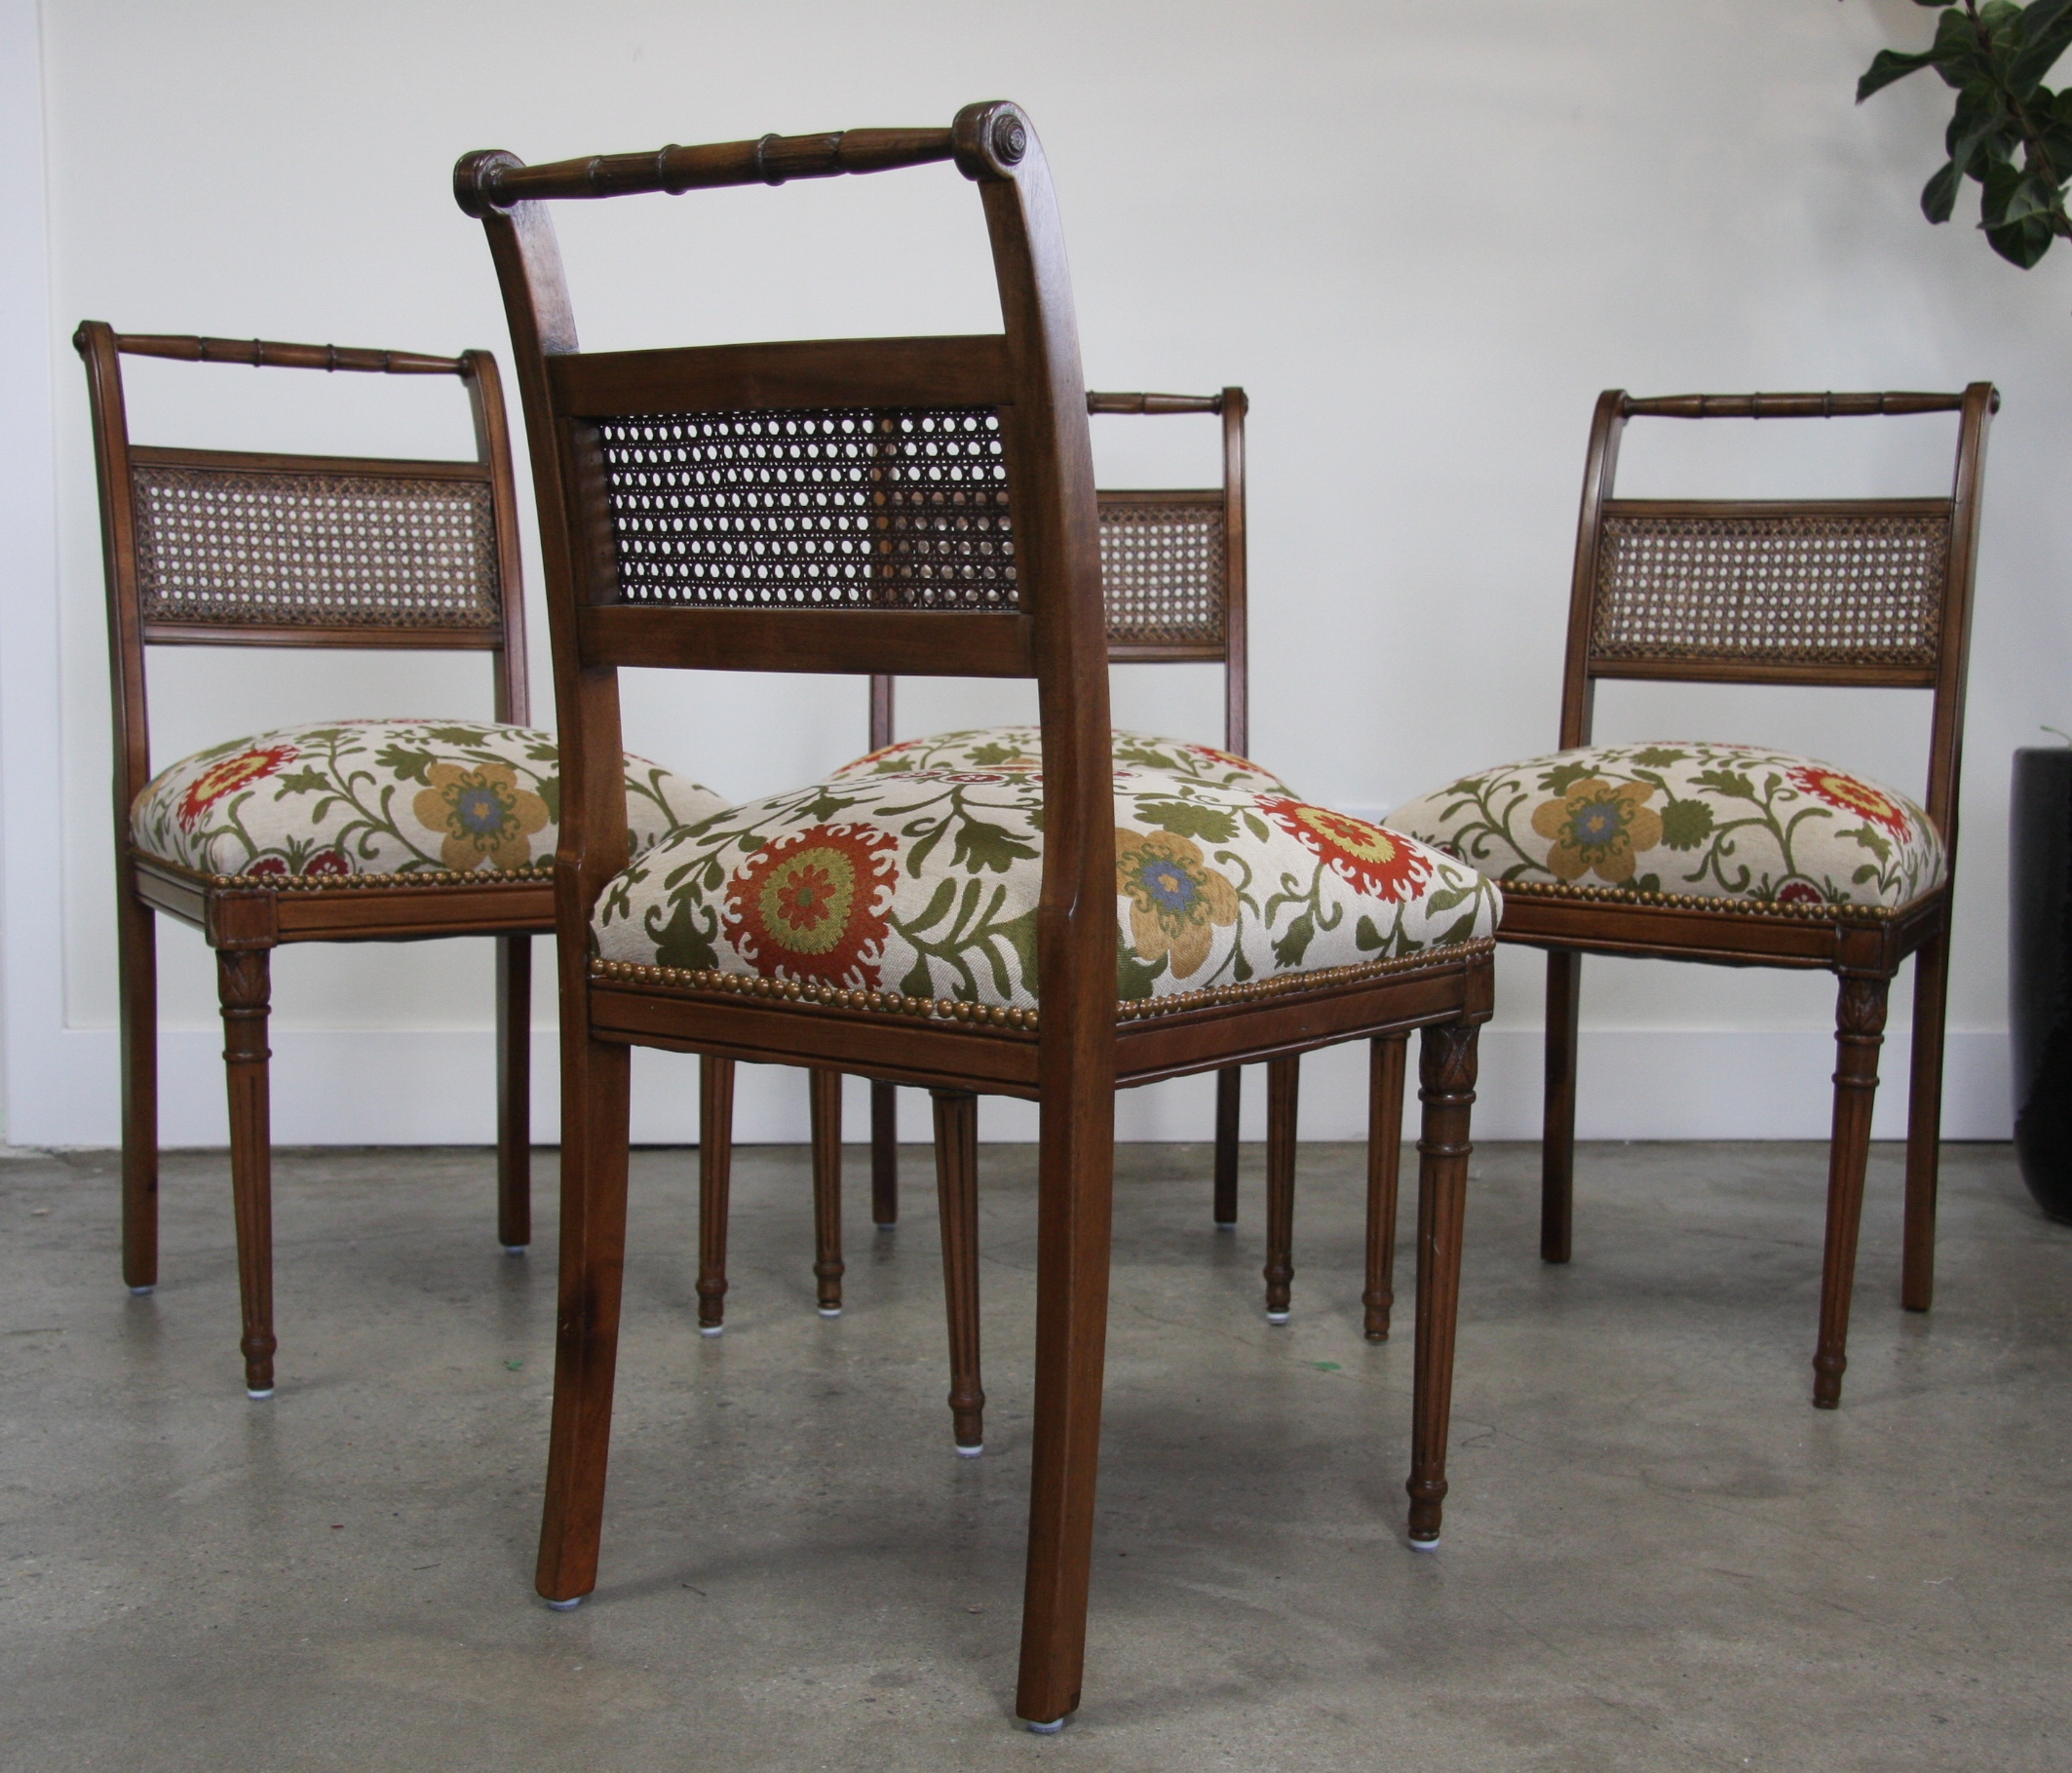 Vintage dining chair restoration. Upholstered in a designer fabric